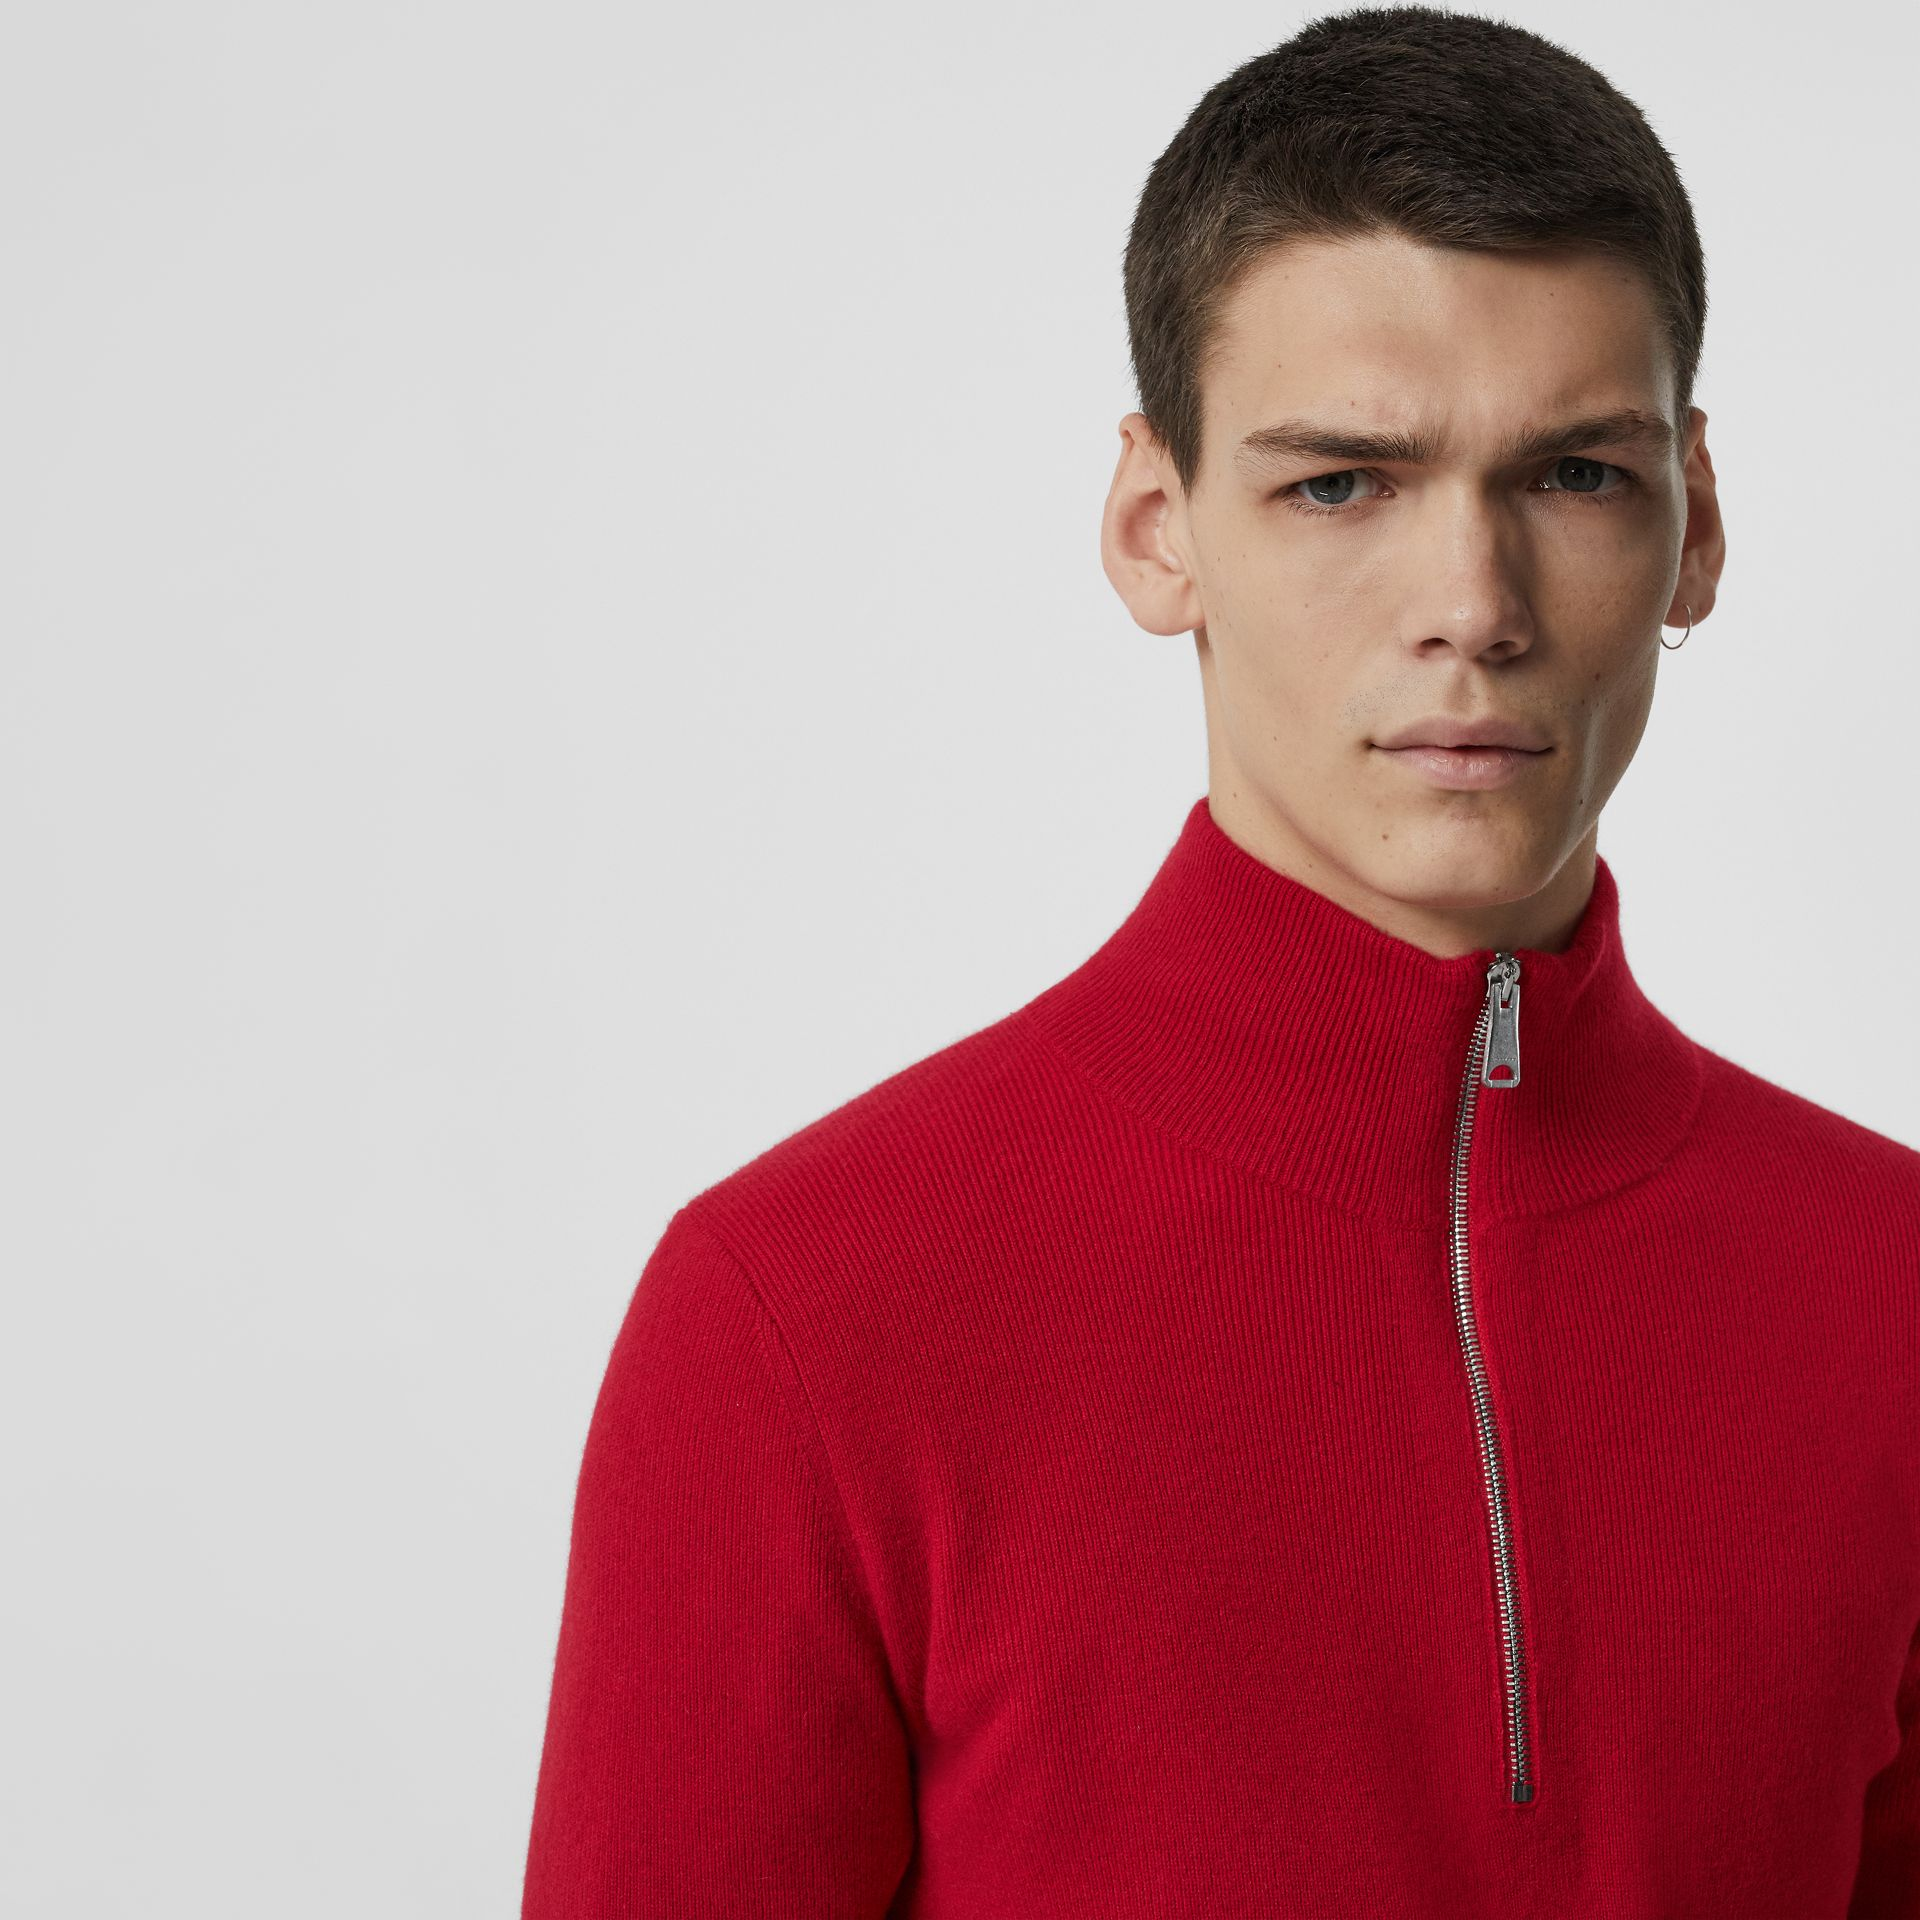 Rib Knit Cashmere Half-zip Sweater in Military Red - Men | Burberry - gallery image 1